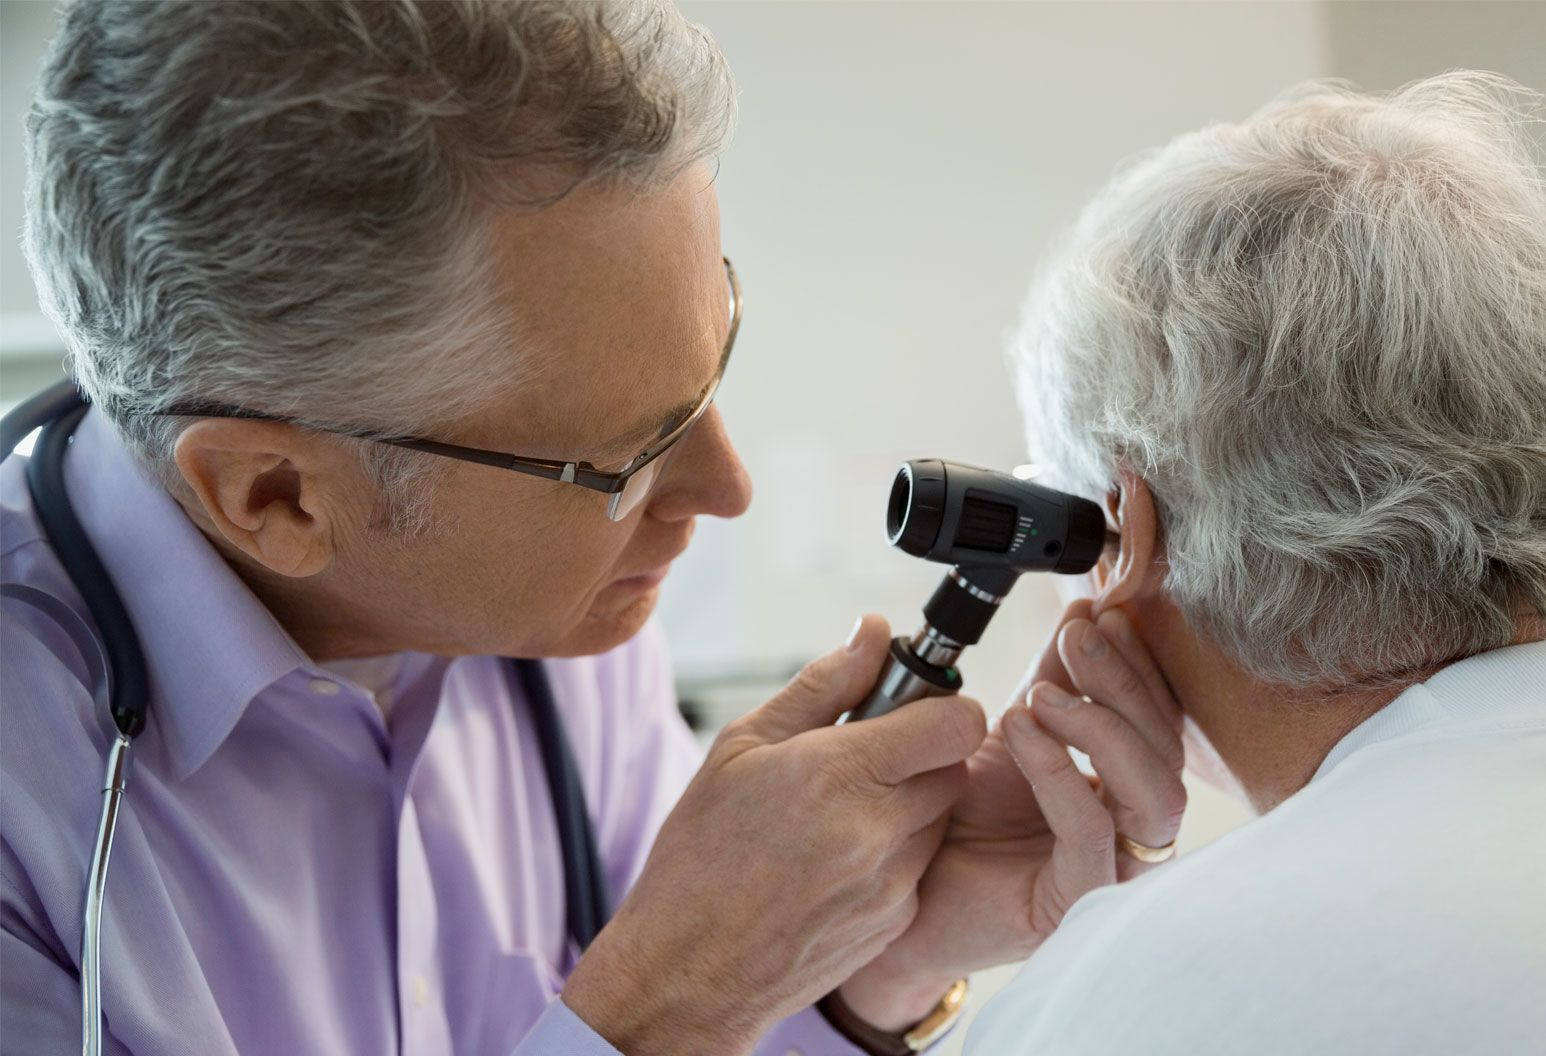 Male physician checking patients ear with otoscope